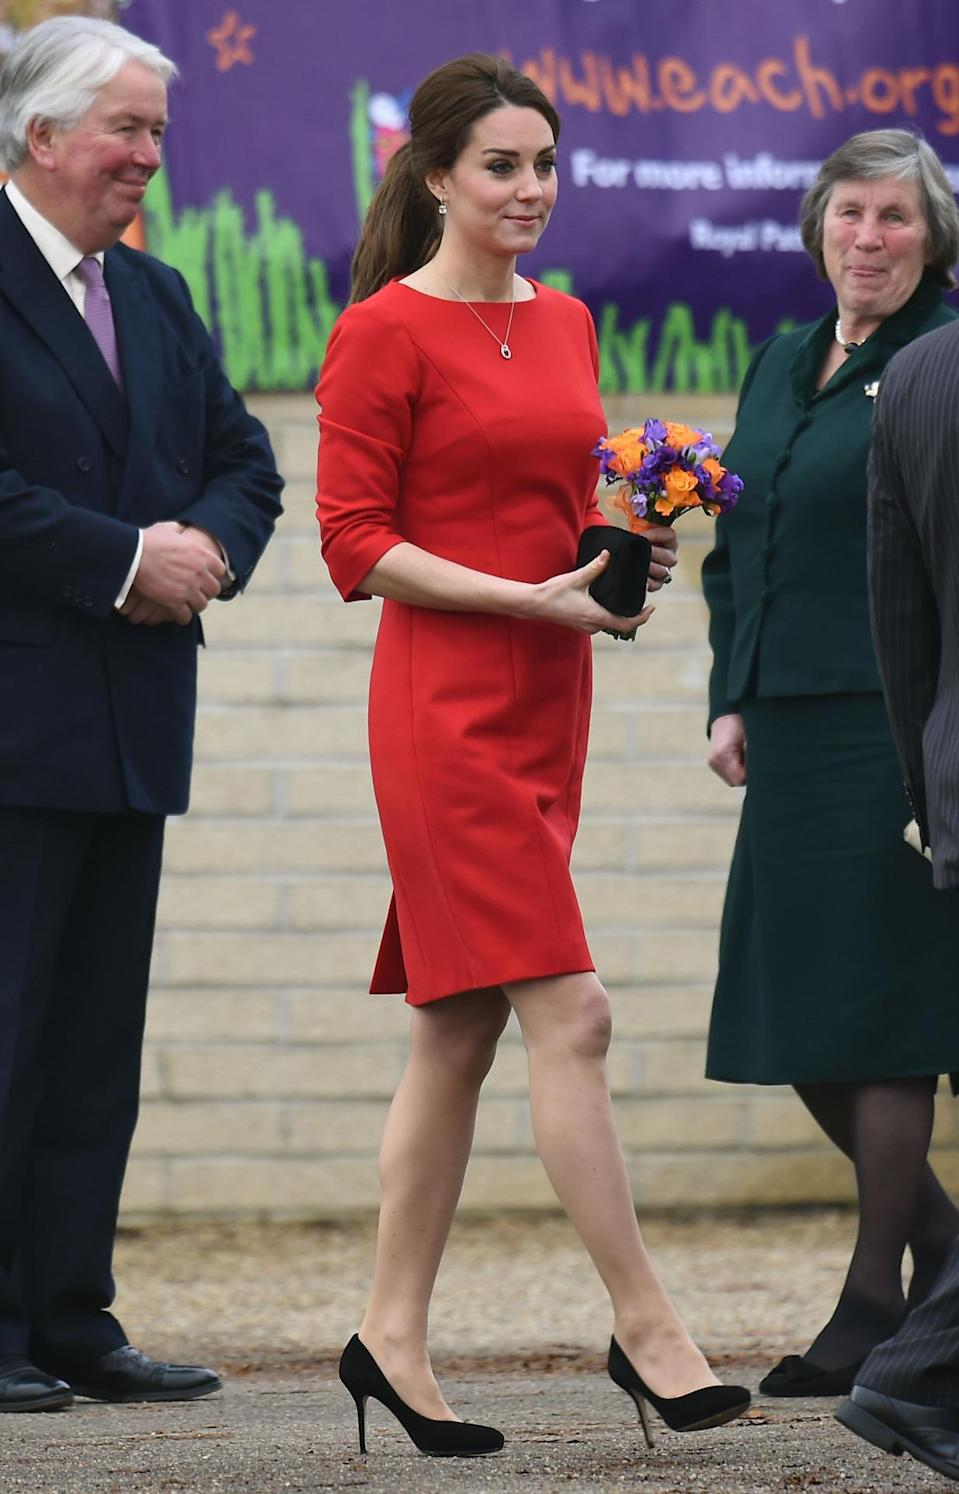 <p>Kate attended a charity event in Norfolk wearing a vibrant red dress by Katherine Hooker, black Jimmy Choos and a Stuart Weitzman bag. </p><p><i>[Photo: PA]</i></p>